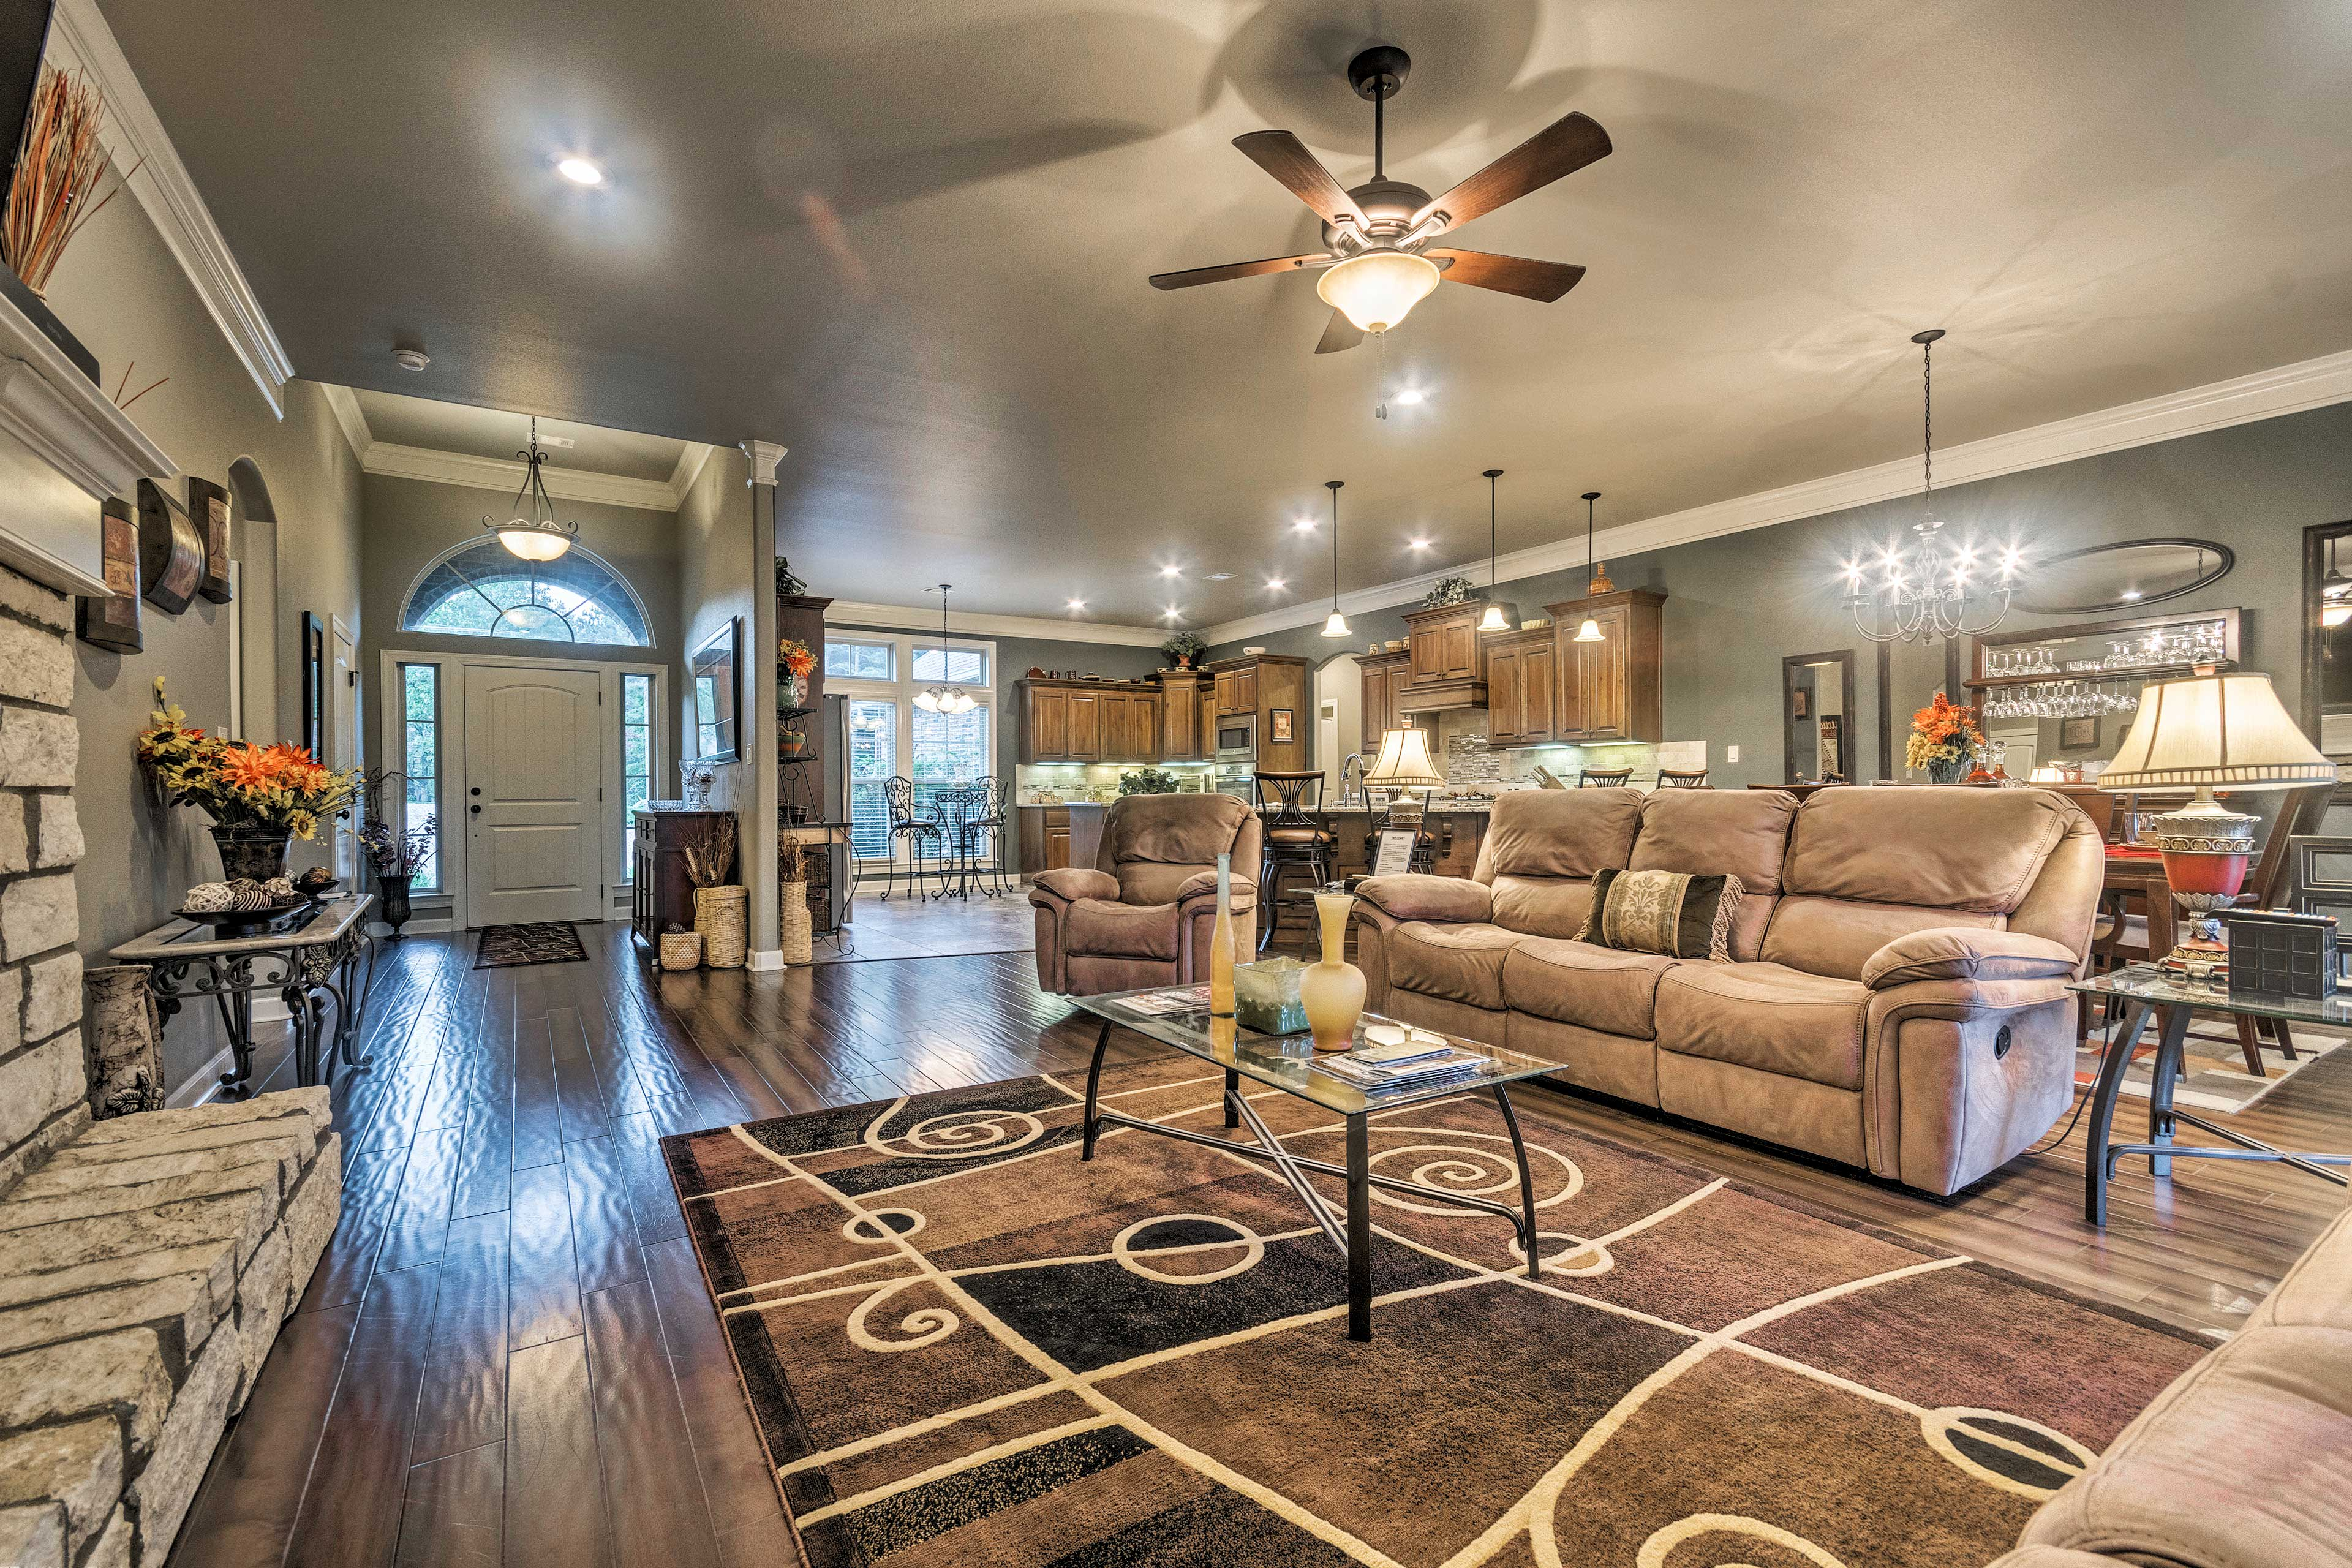 Relax on the reclining couch and watch the flat-screen TV!